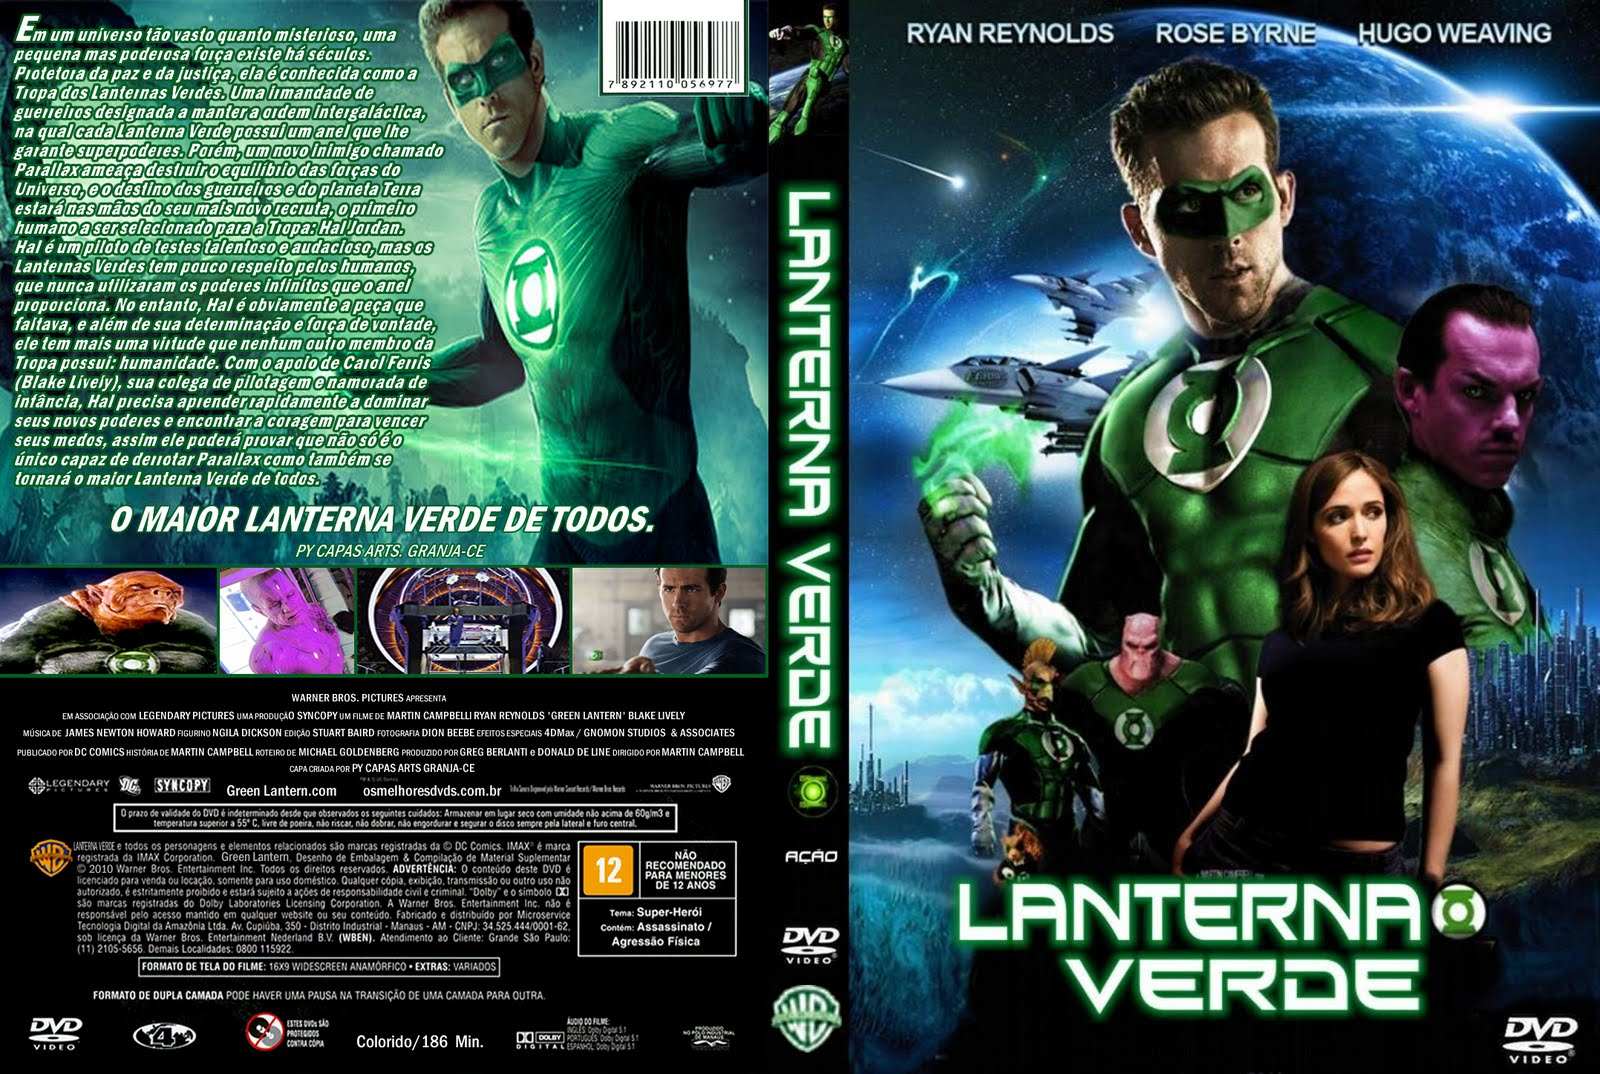 Torrent Para Download: Capas de dvd